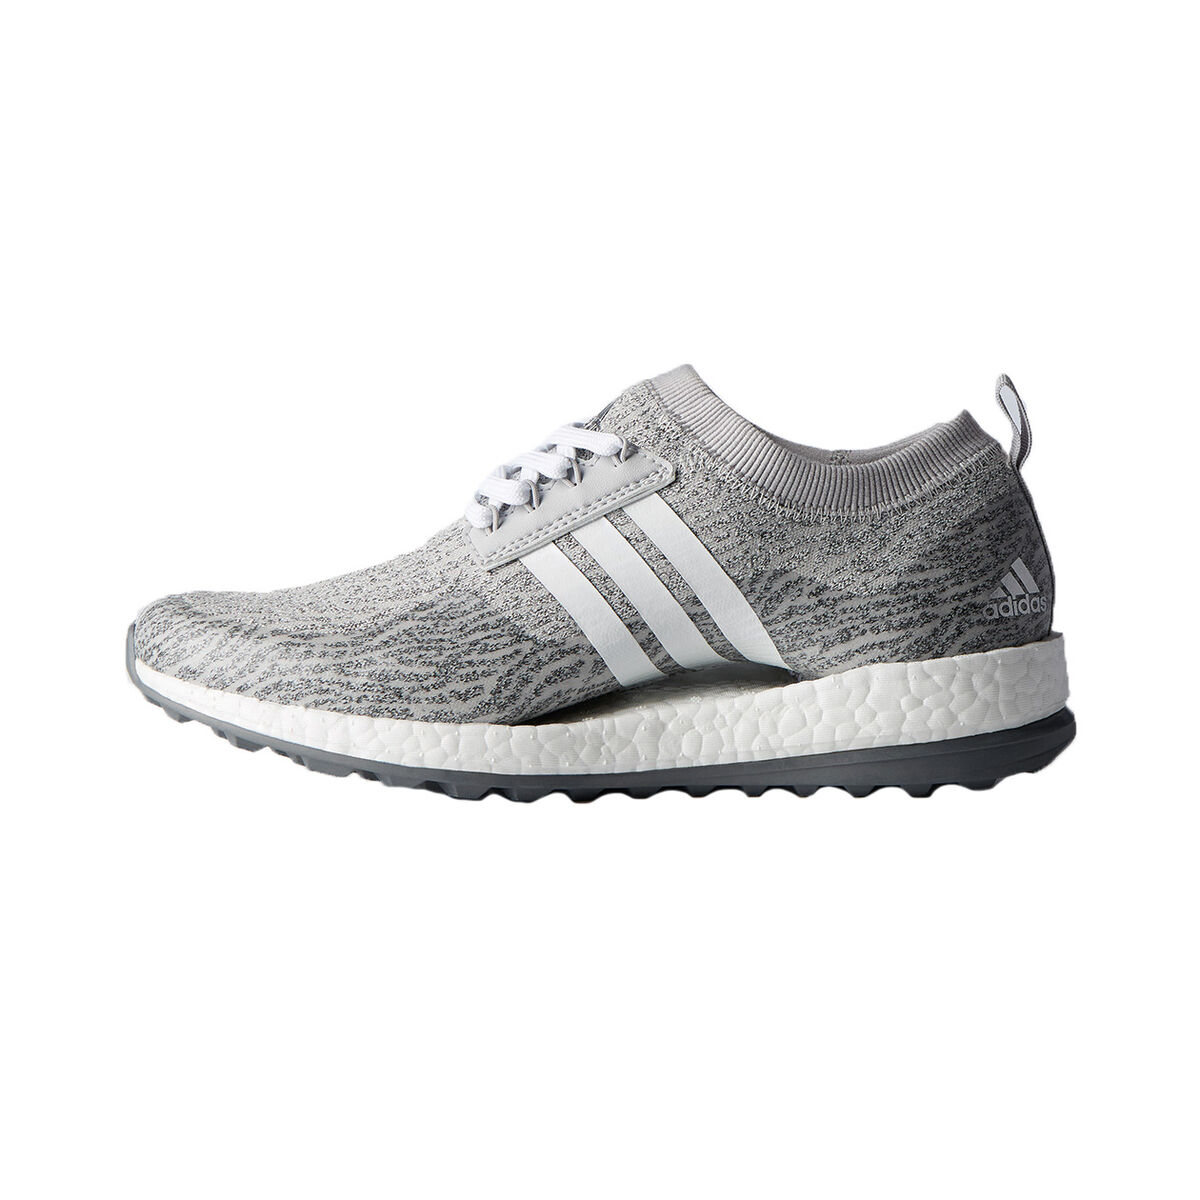 adidas Pure Boost XG Women s Golf Shoe - Grey White 1ac40d4226